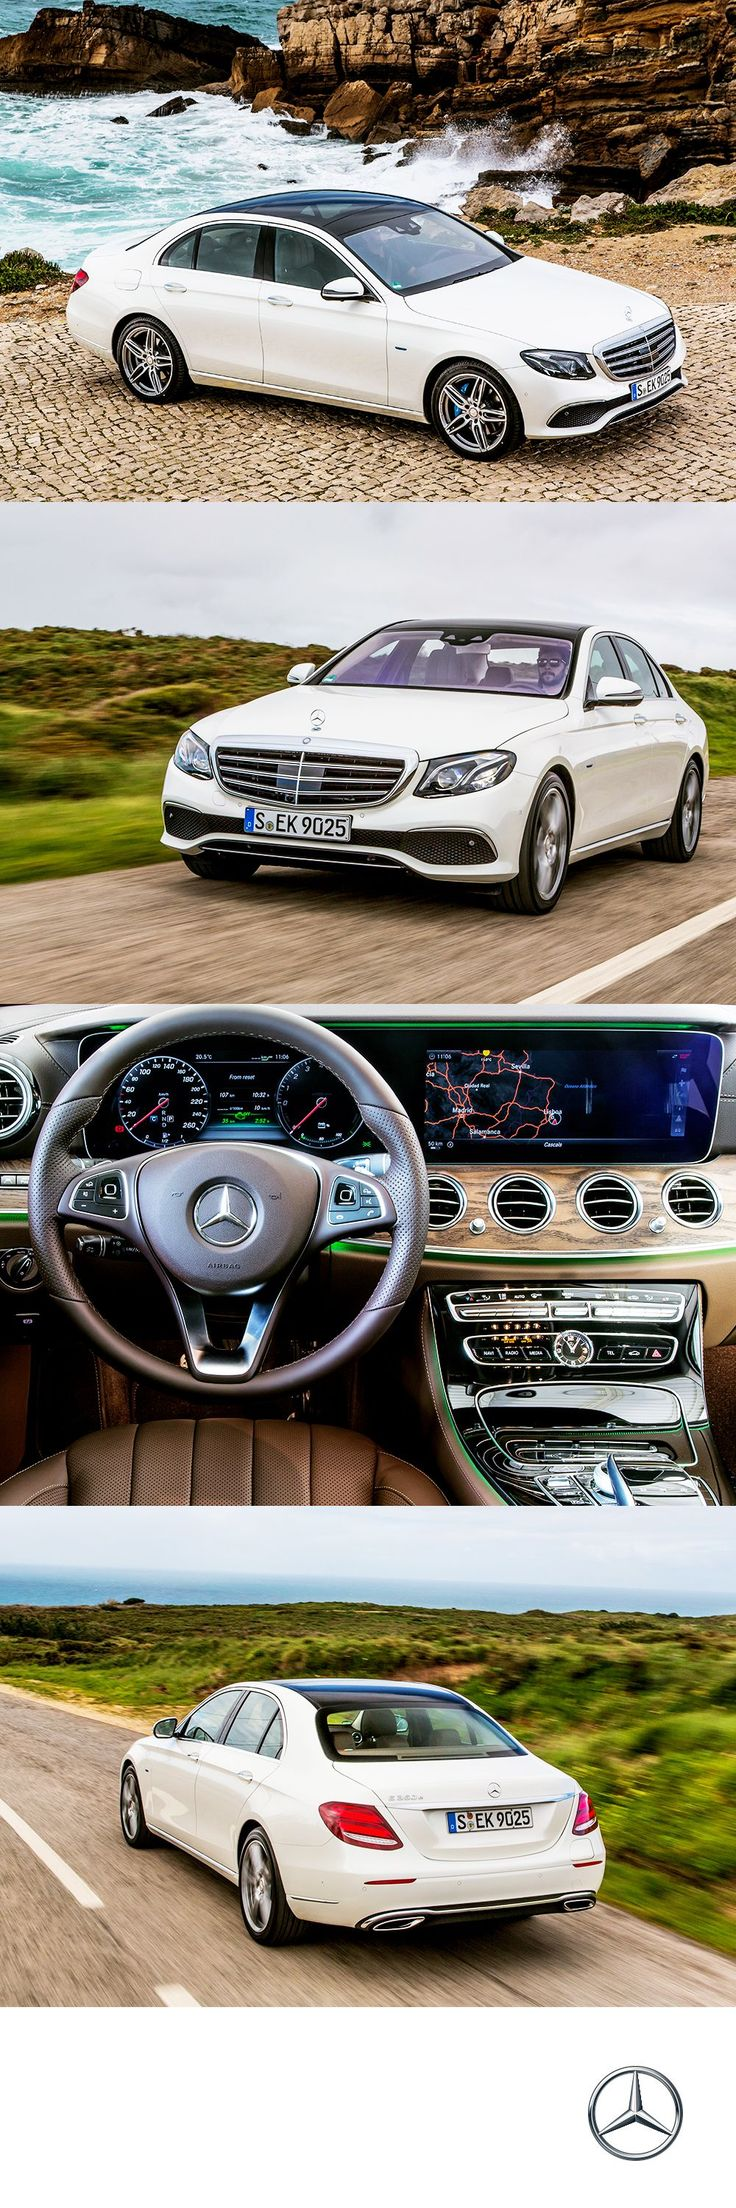 Portugal was the ideal venue for our latest press drive, which saw journalists from around the world converge to test drive the all-new 2017 E350e.